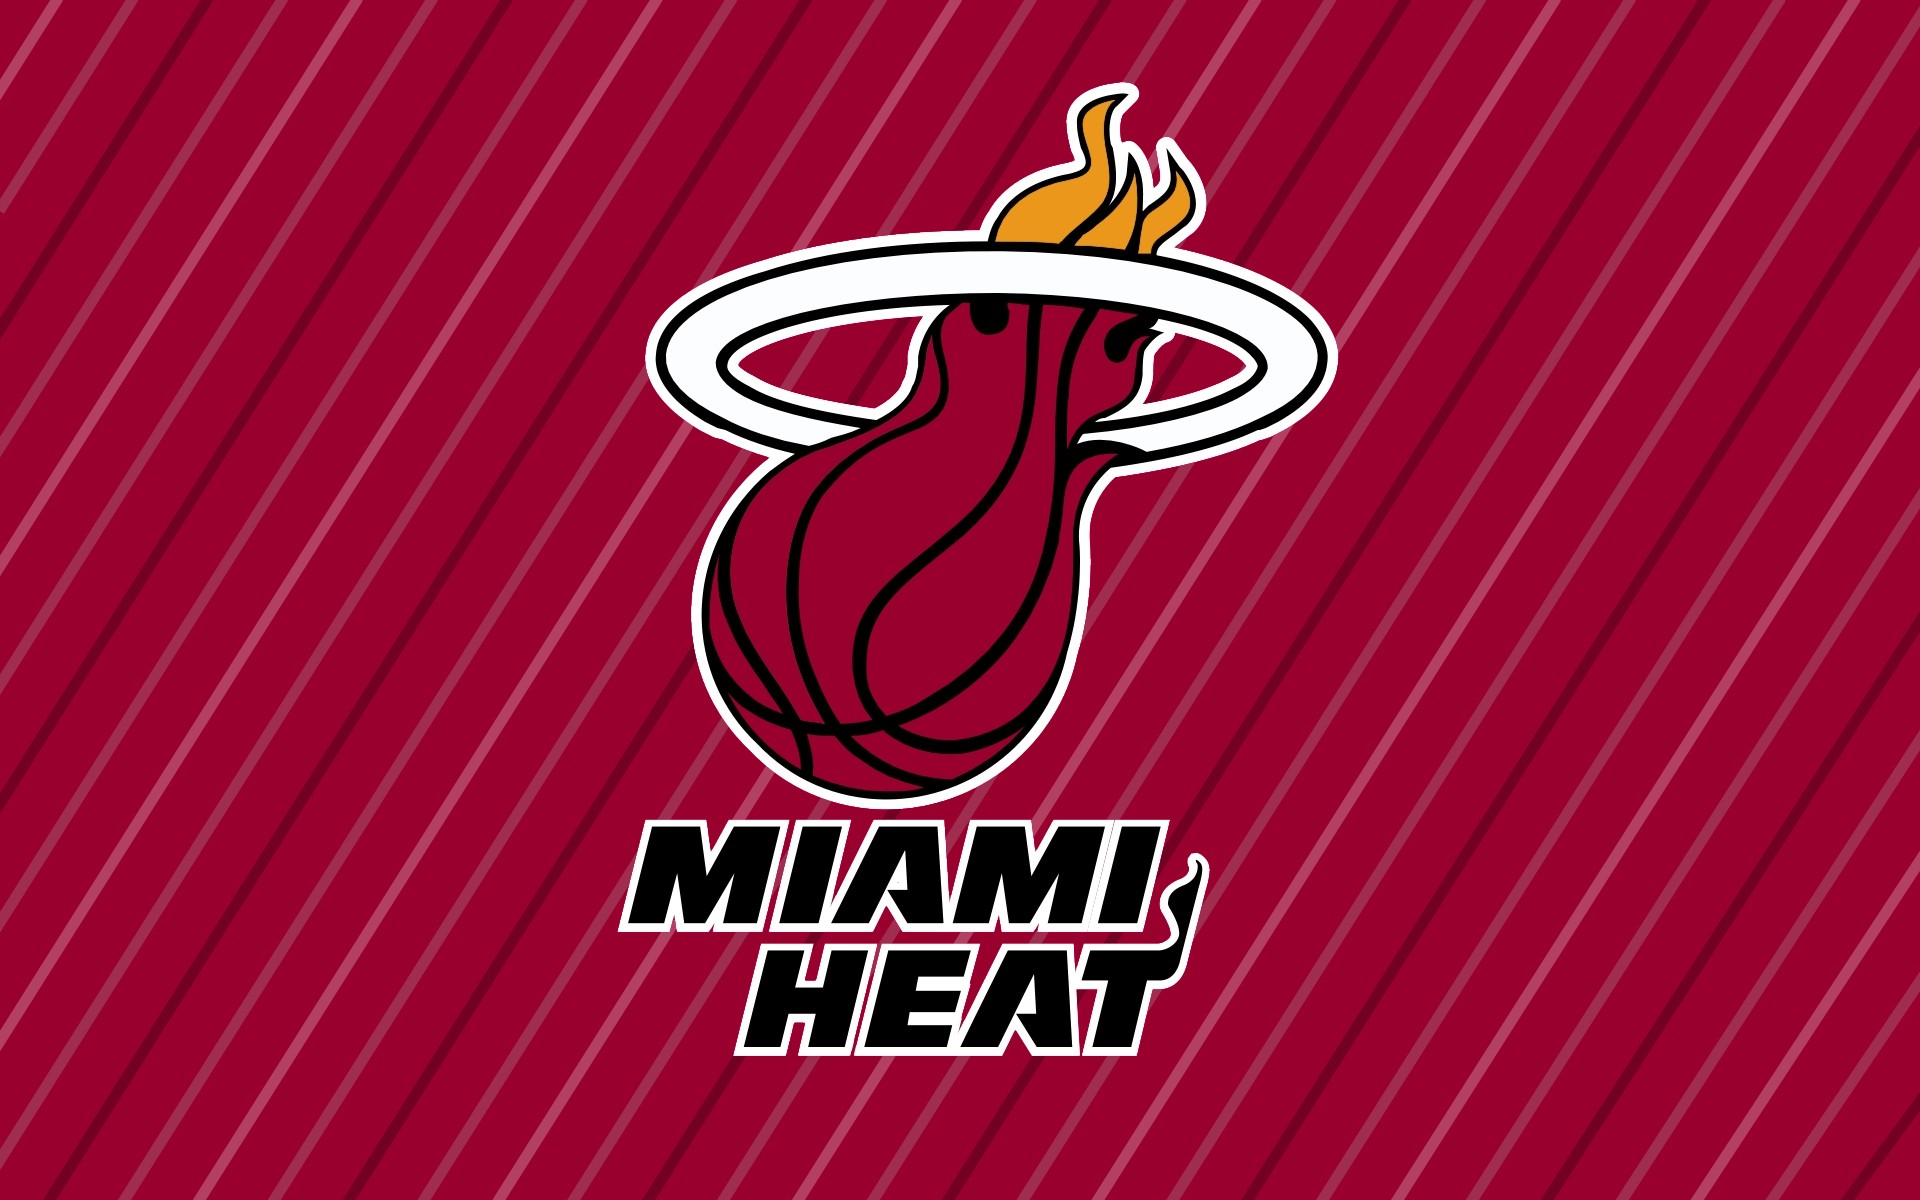 Miami Heat Wallpaper   HD Wallpapers 1920x1200